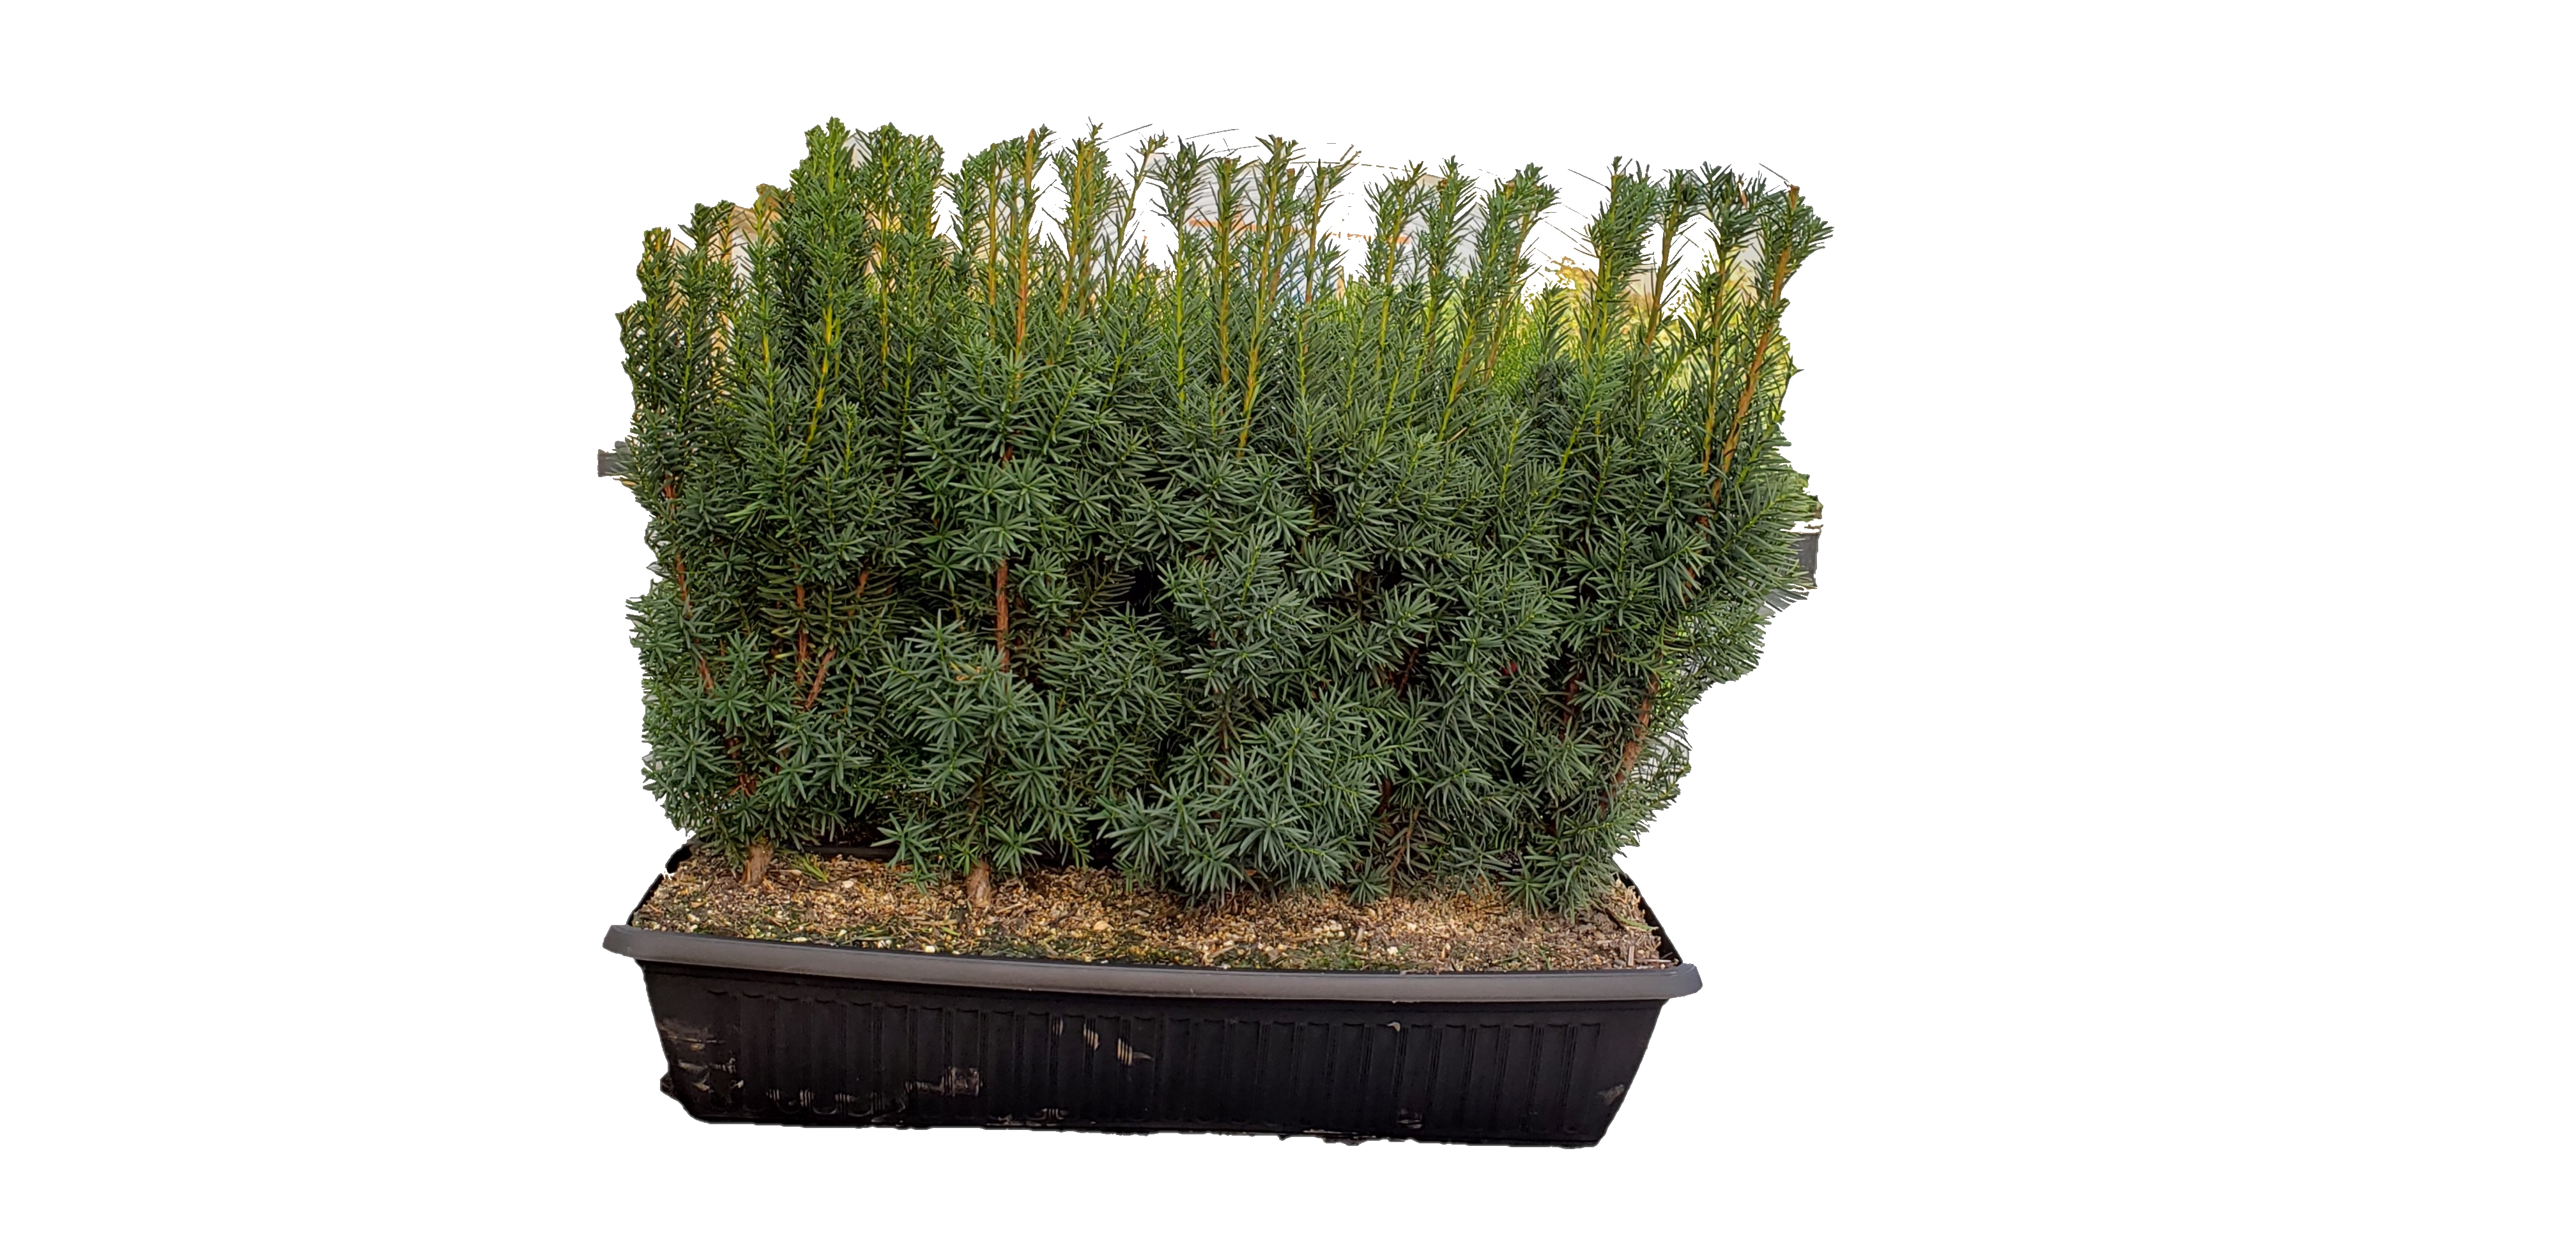 hicks-yew-plastic-hedge-no-background.jpg